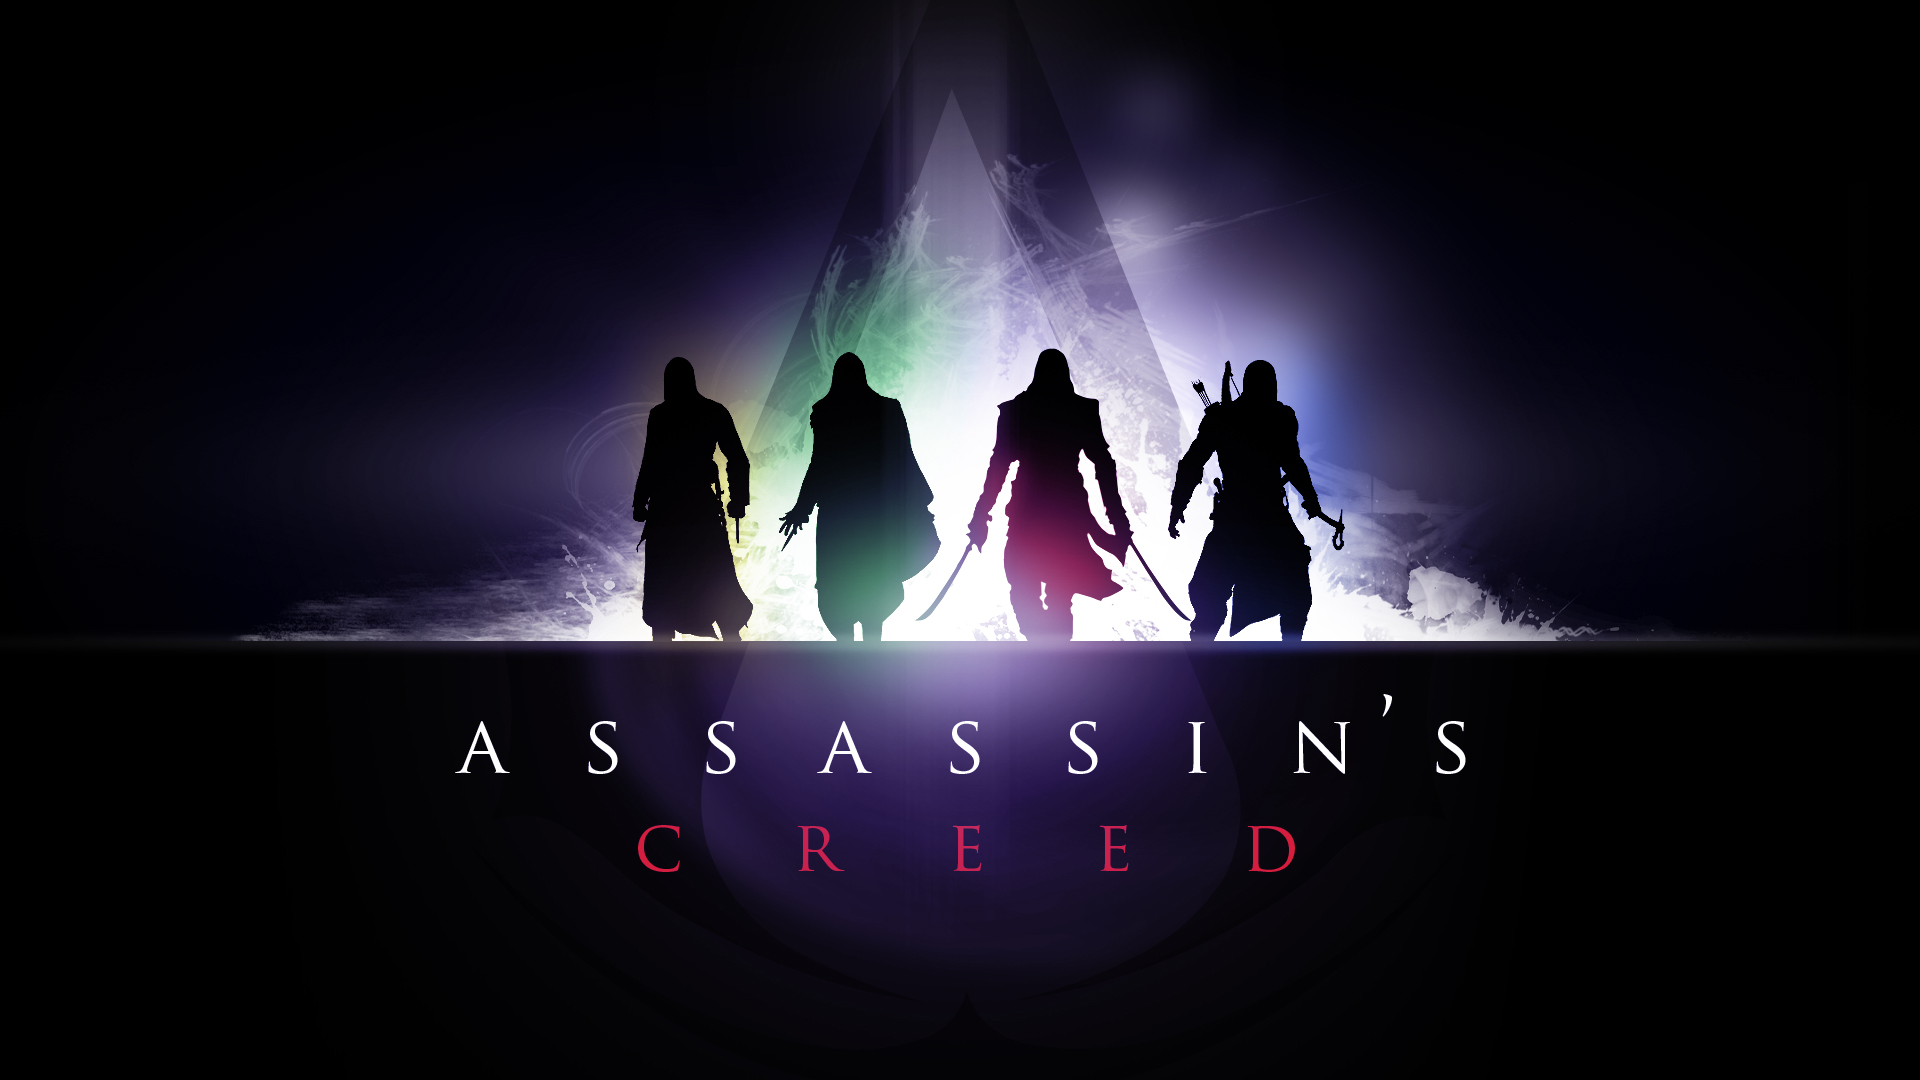 Symphony Of Time Assassin S Creed Wallpaper 369565894